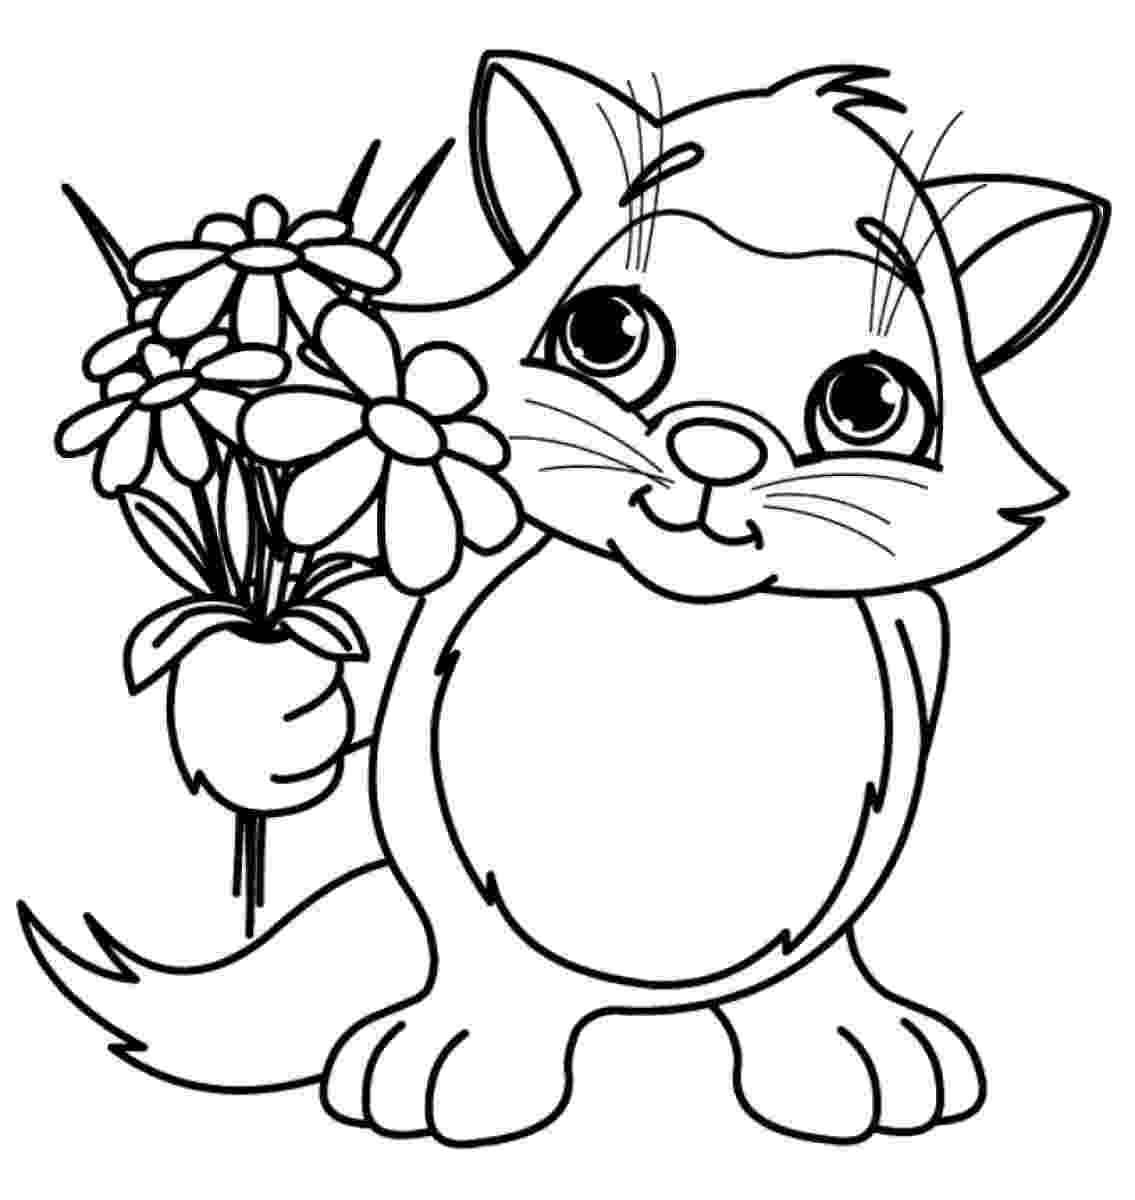 flowers coloring pages printable flowers coloring pages minister coloring flowers coloring printable pages